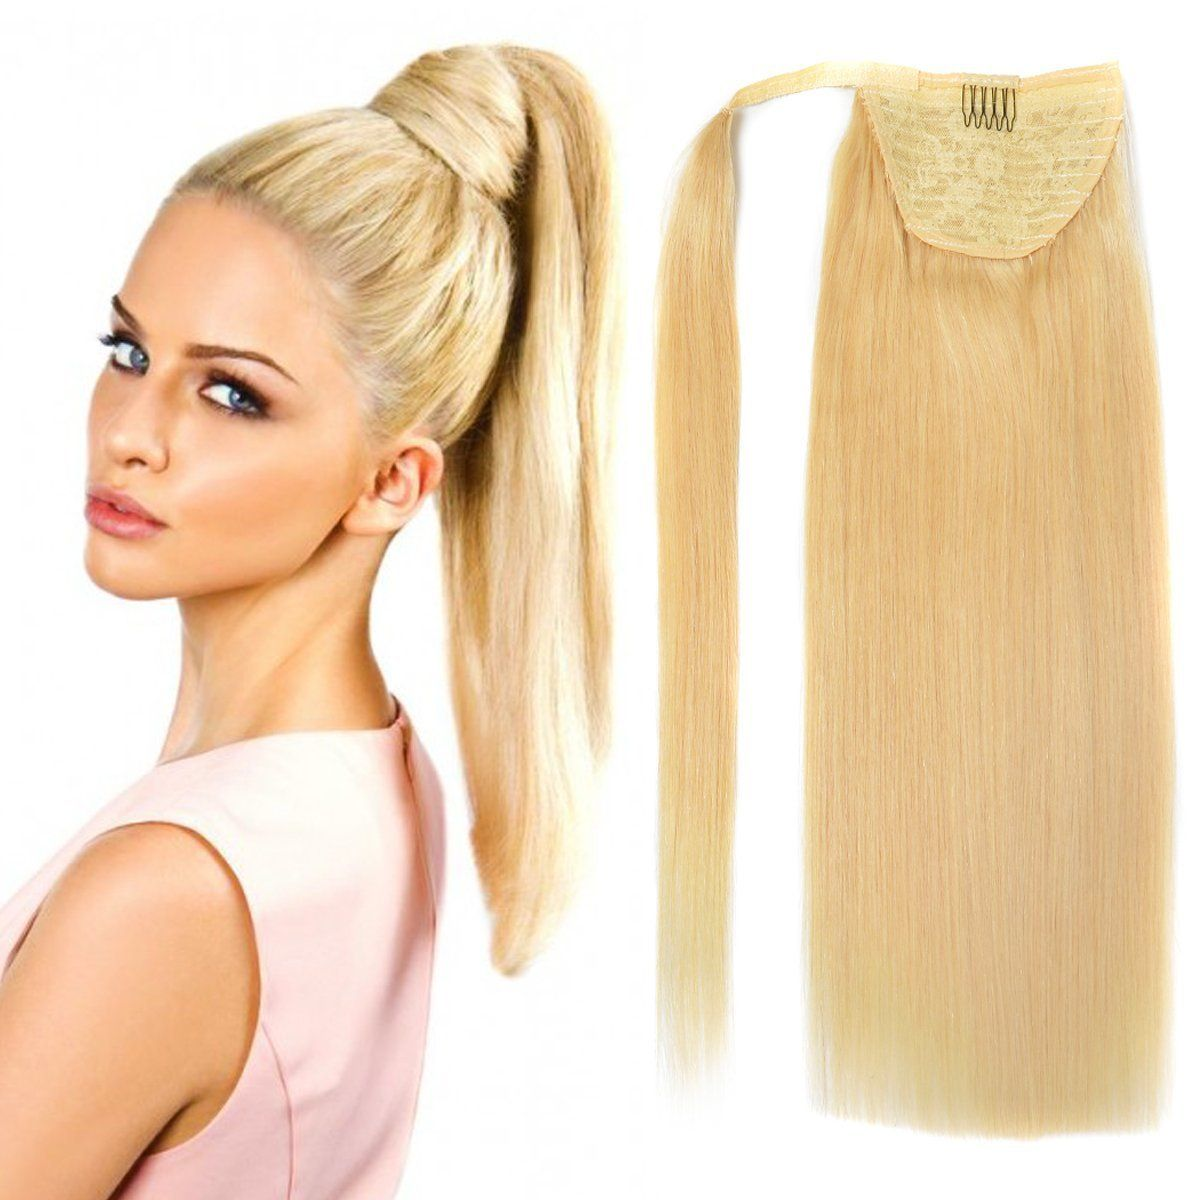 18 Straight Wrap Around Ponytail Human Hair Extensions For Women